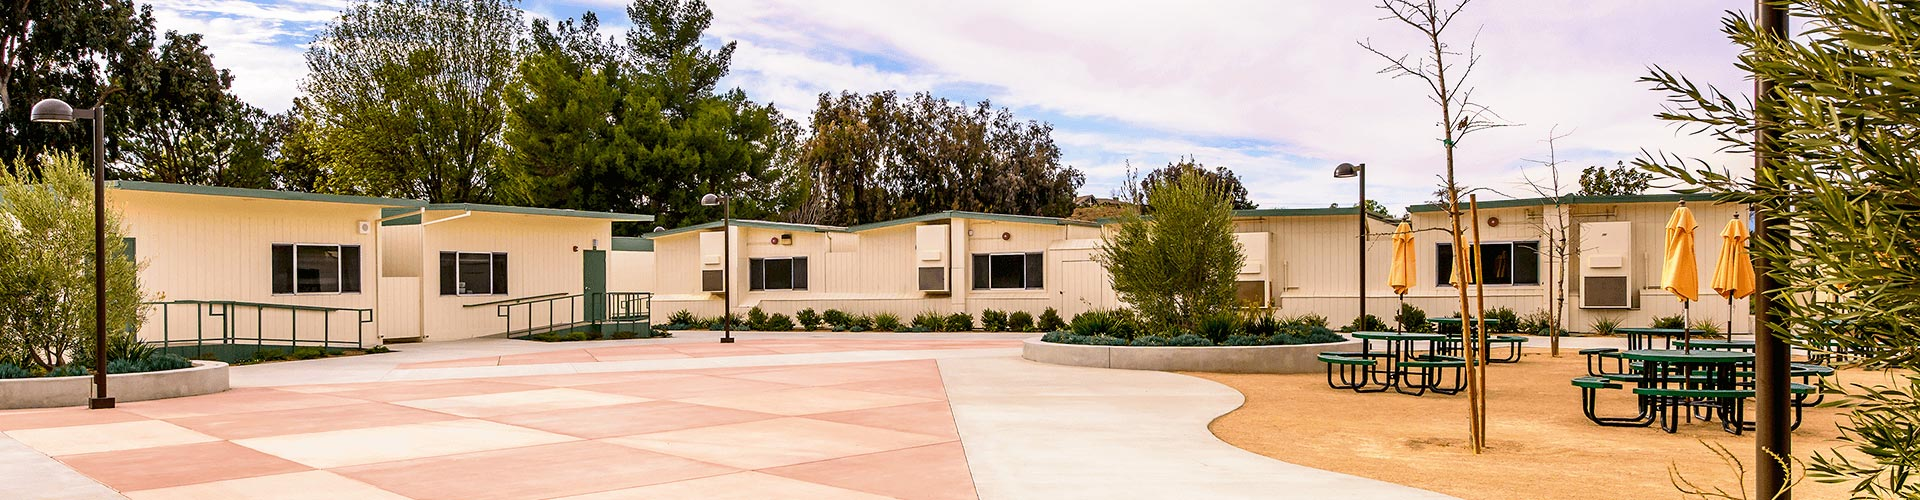 Education Solution Modular Education Complexes in California-north Banner 1